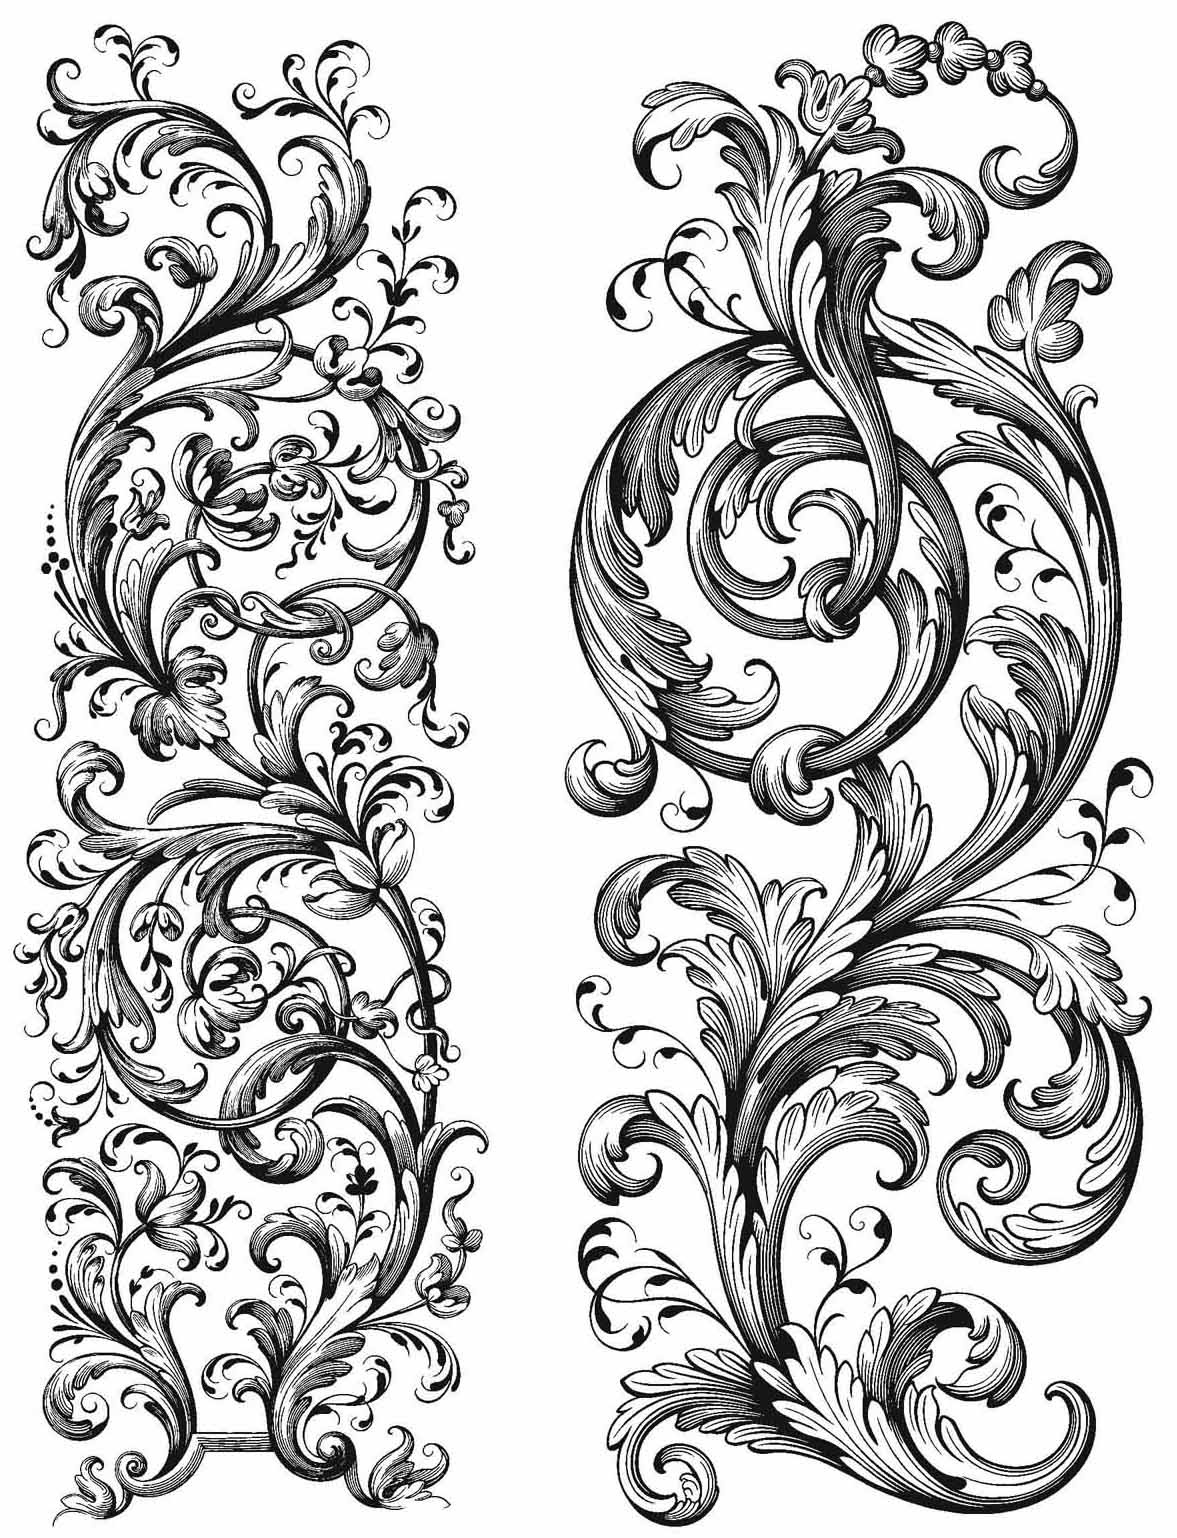 PREORDER Tim Holtz Cling Stamps 7X8.5-Baroque